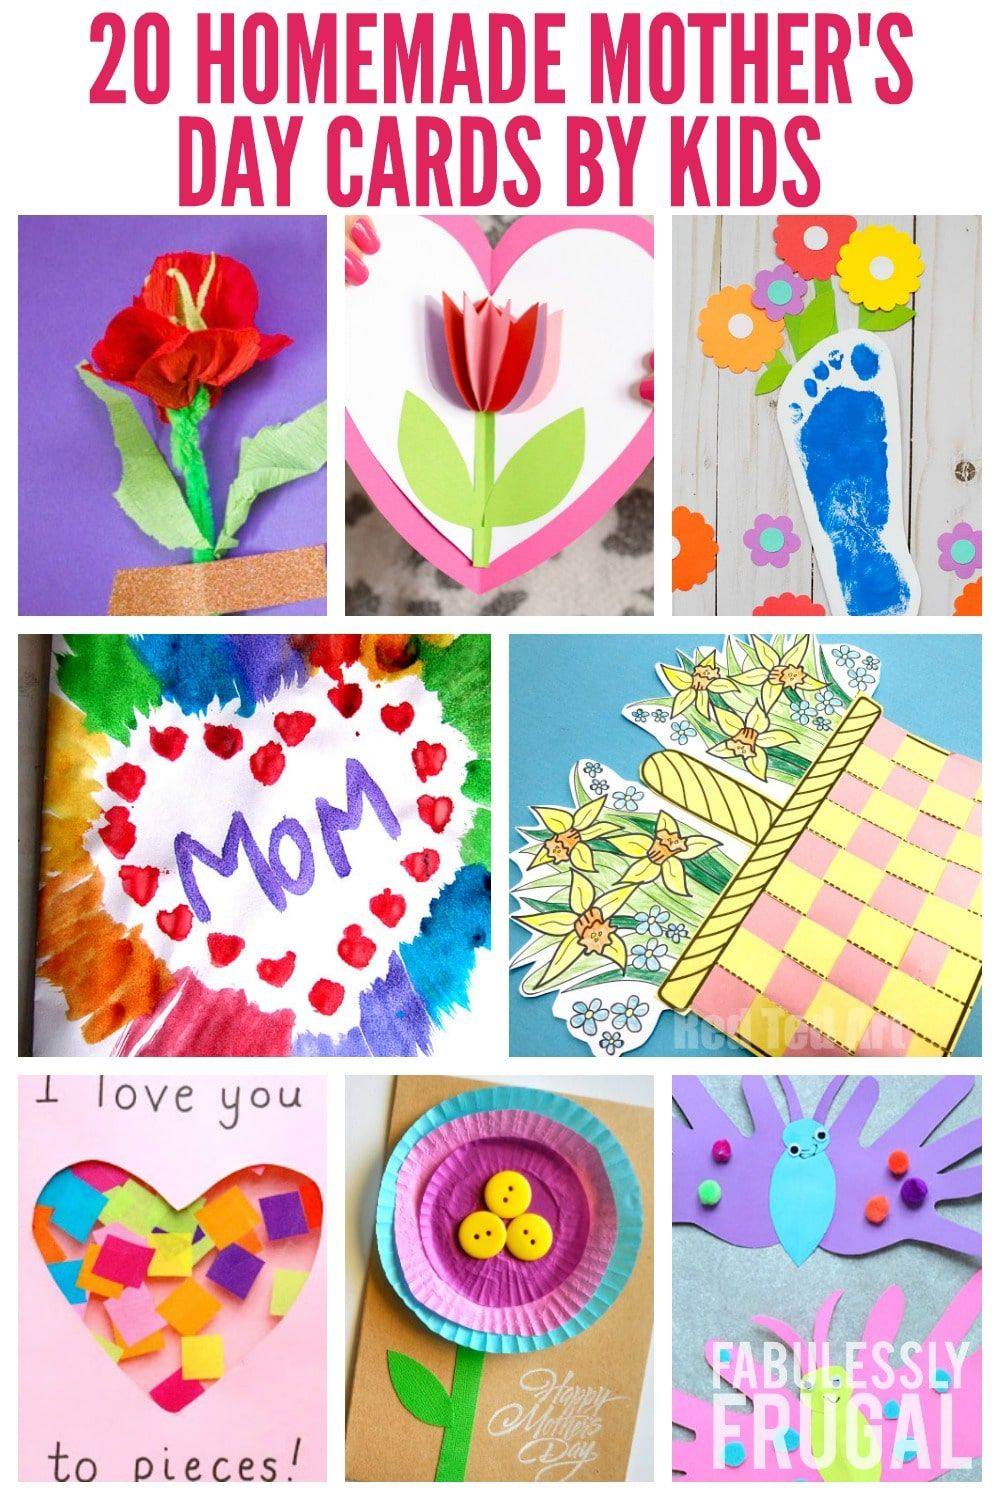 20 easy homemade mothers day card ideas for kids